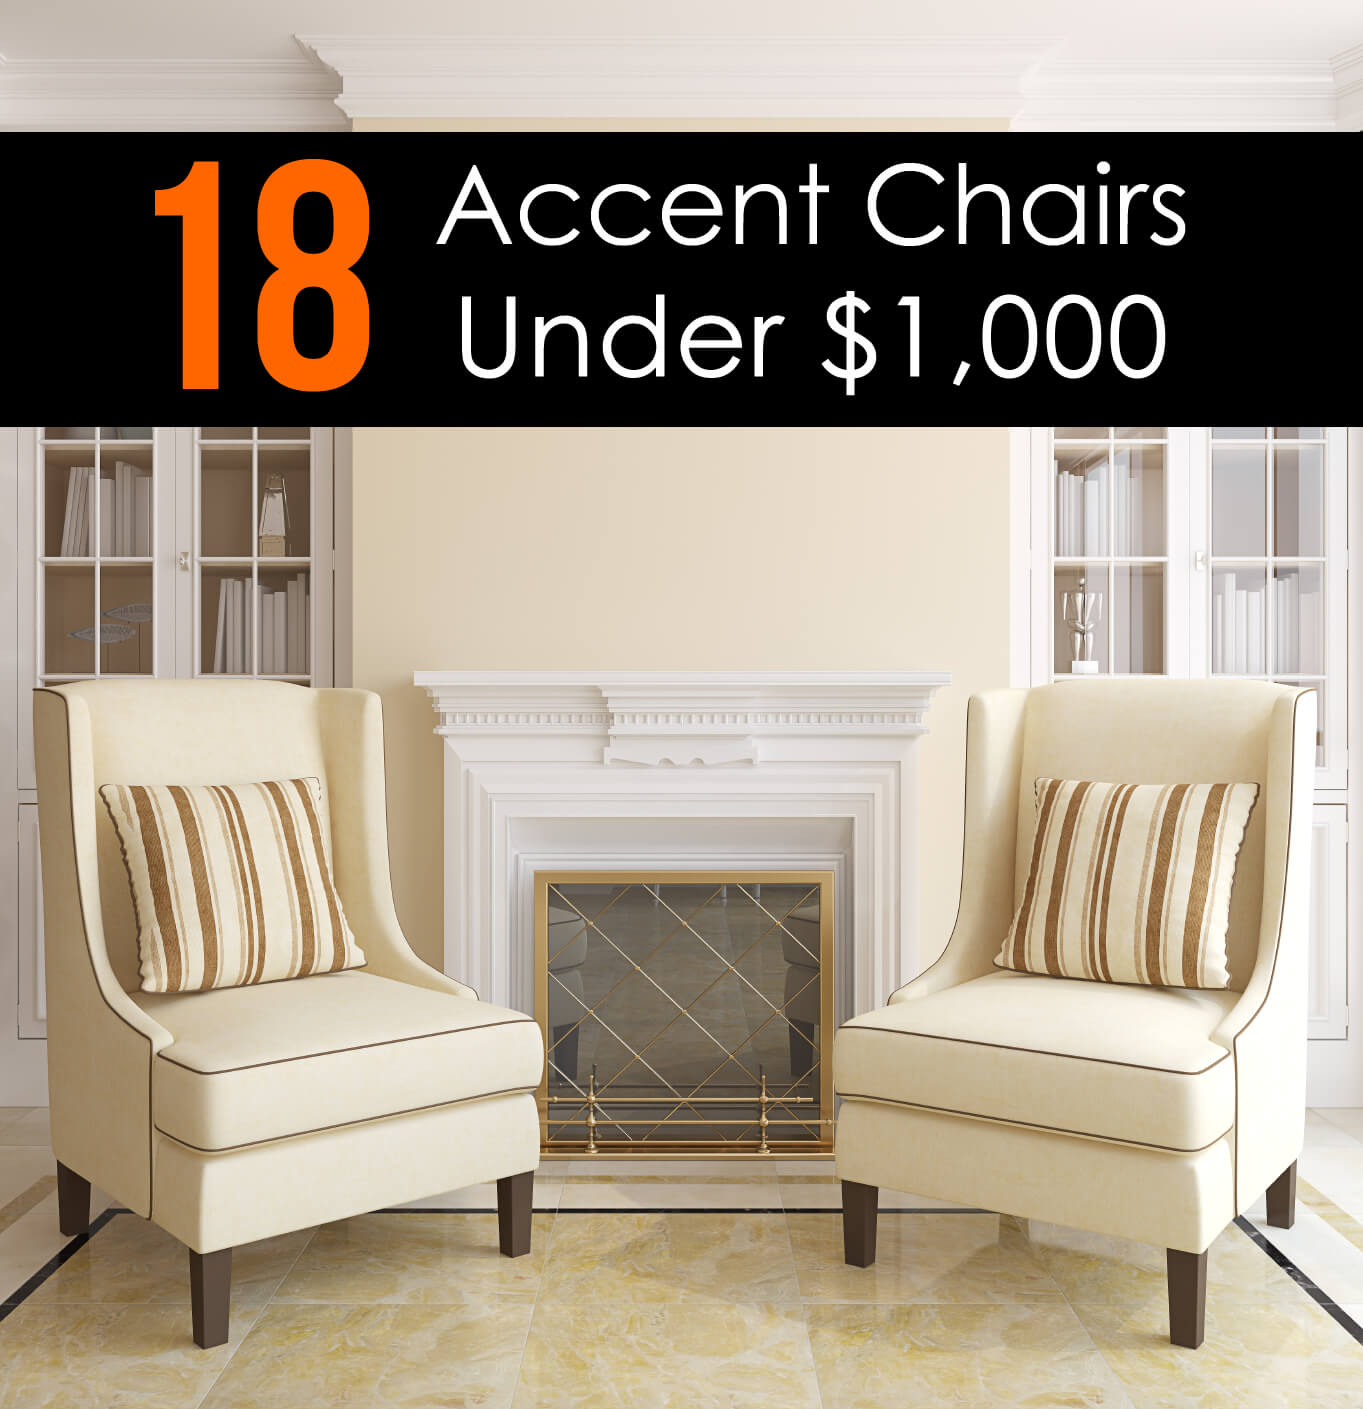 Two Beautiful Accent Chairs Next